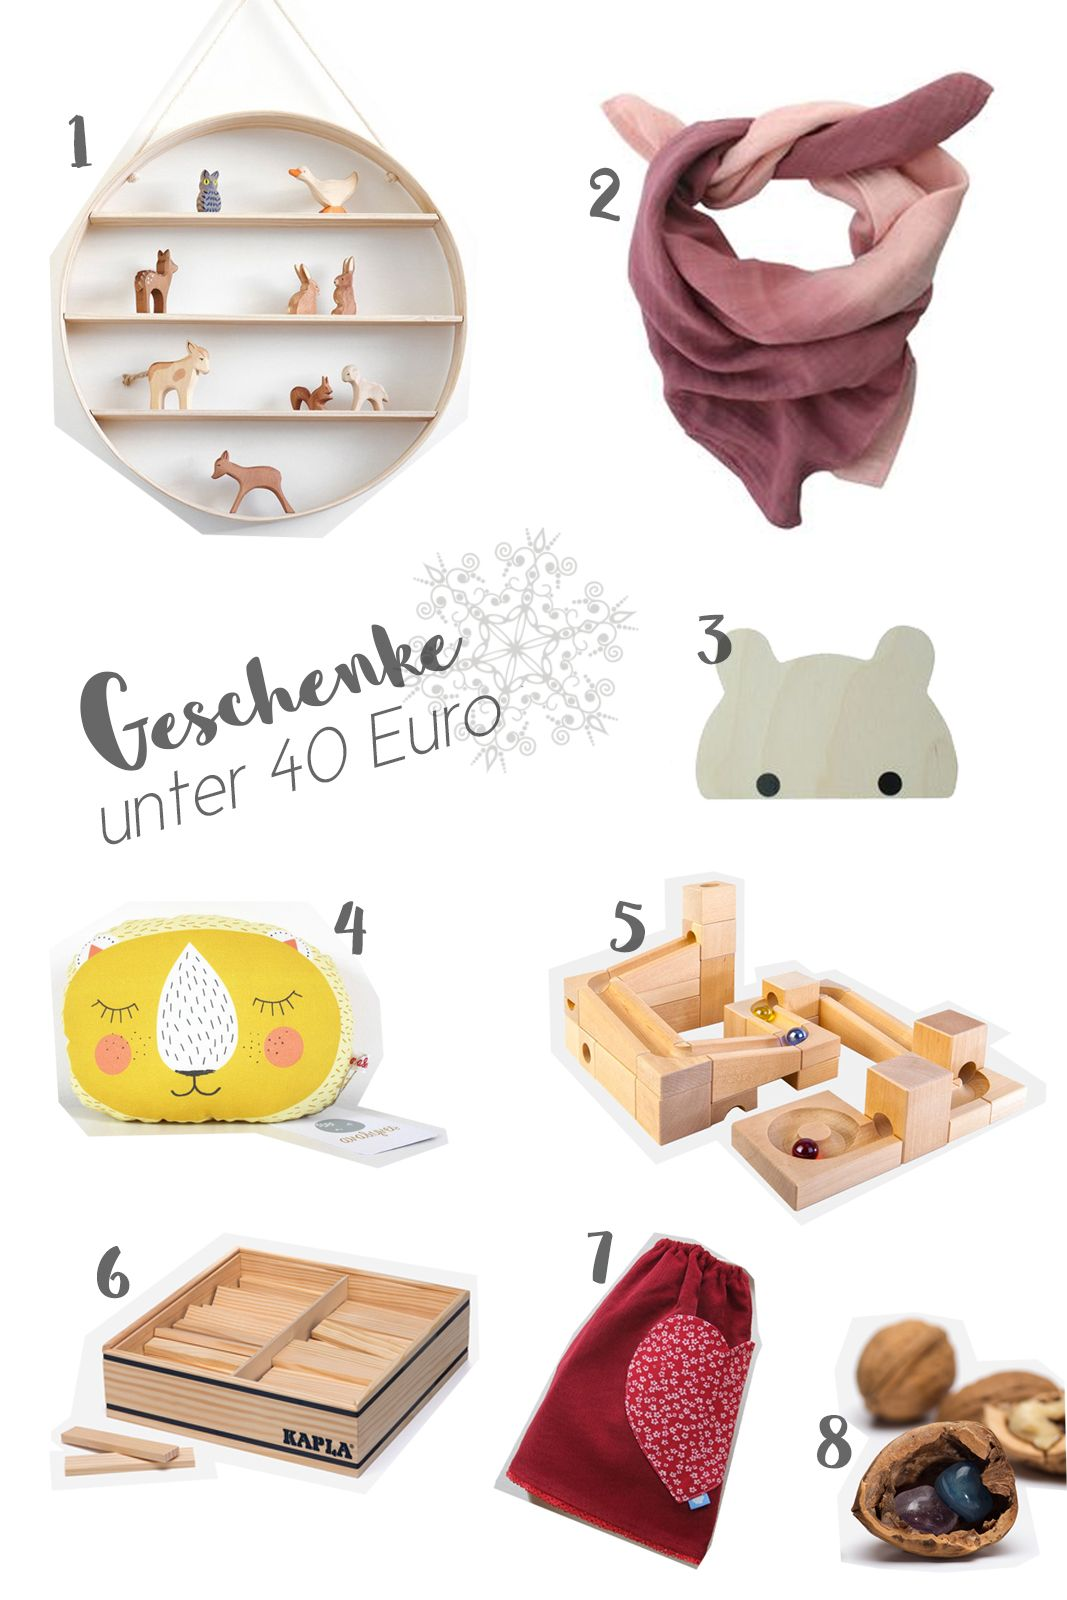 die besten 25 geschenktipps ideen auf pinterest pr sente diy geschenkideen geburtstag und 1. Black Bedroom Furniture Sets. Home Design Ideas